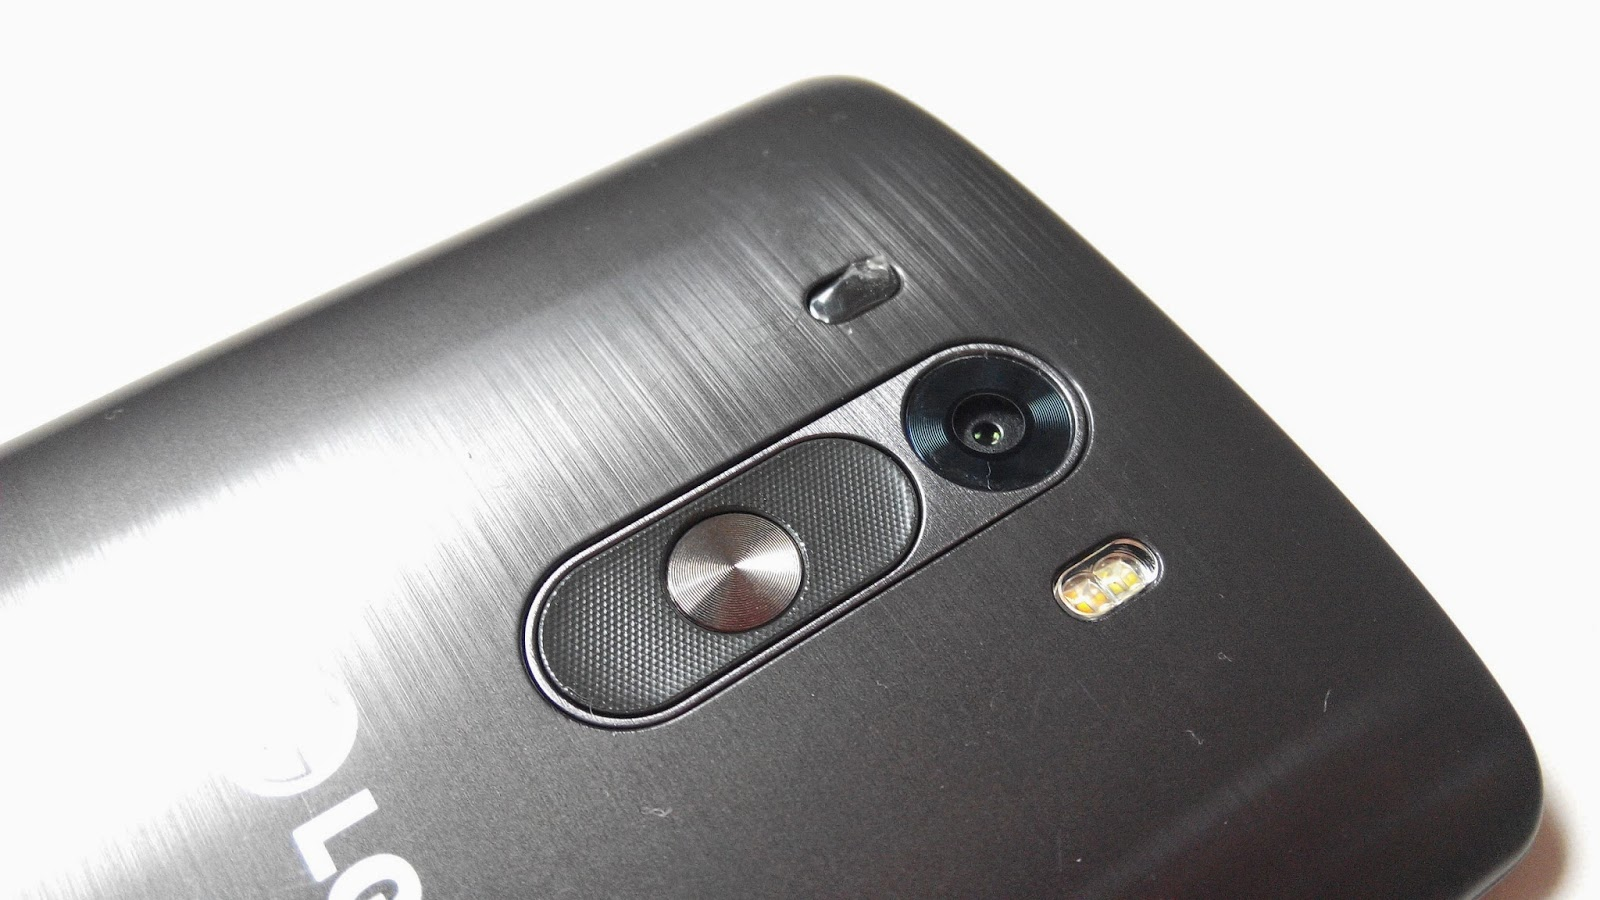 LG G3 - Smartphone from the future   ? - The Tech Revolutionist